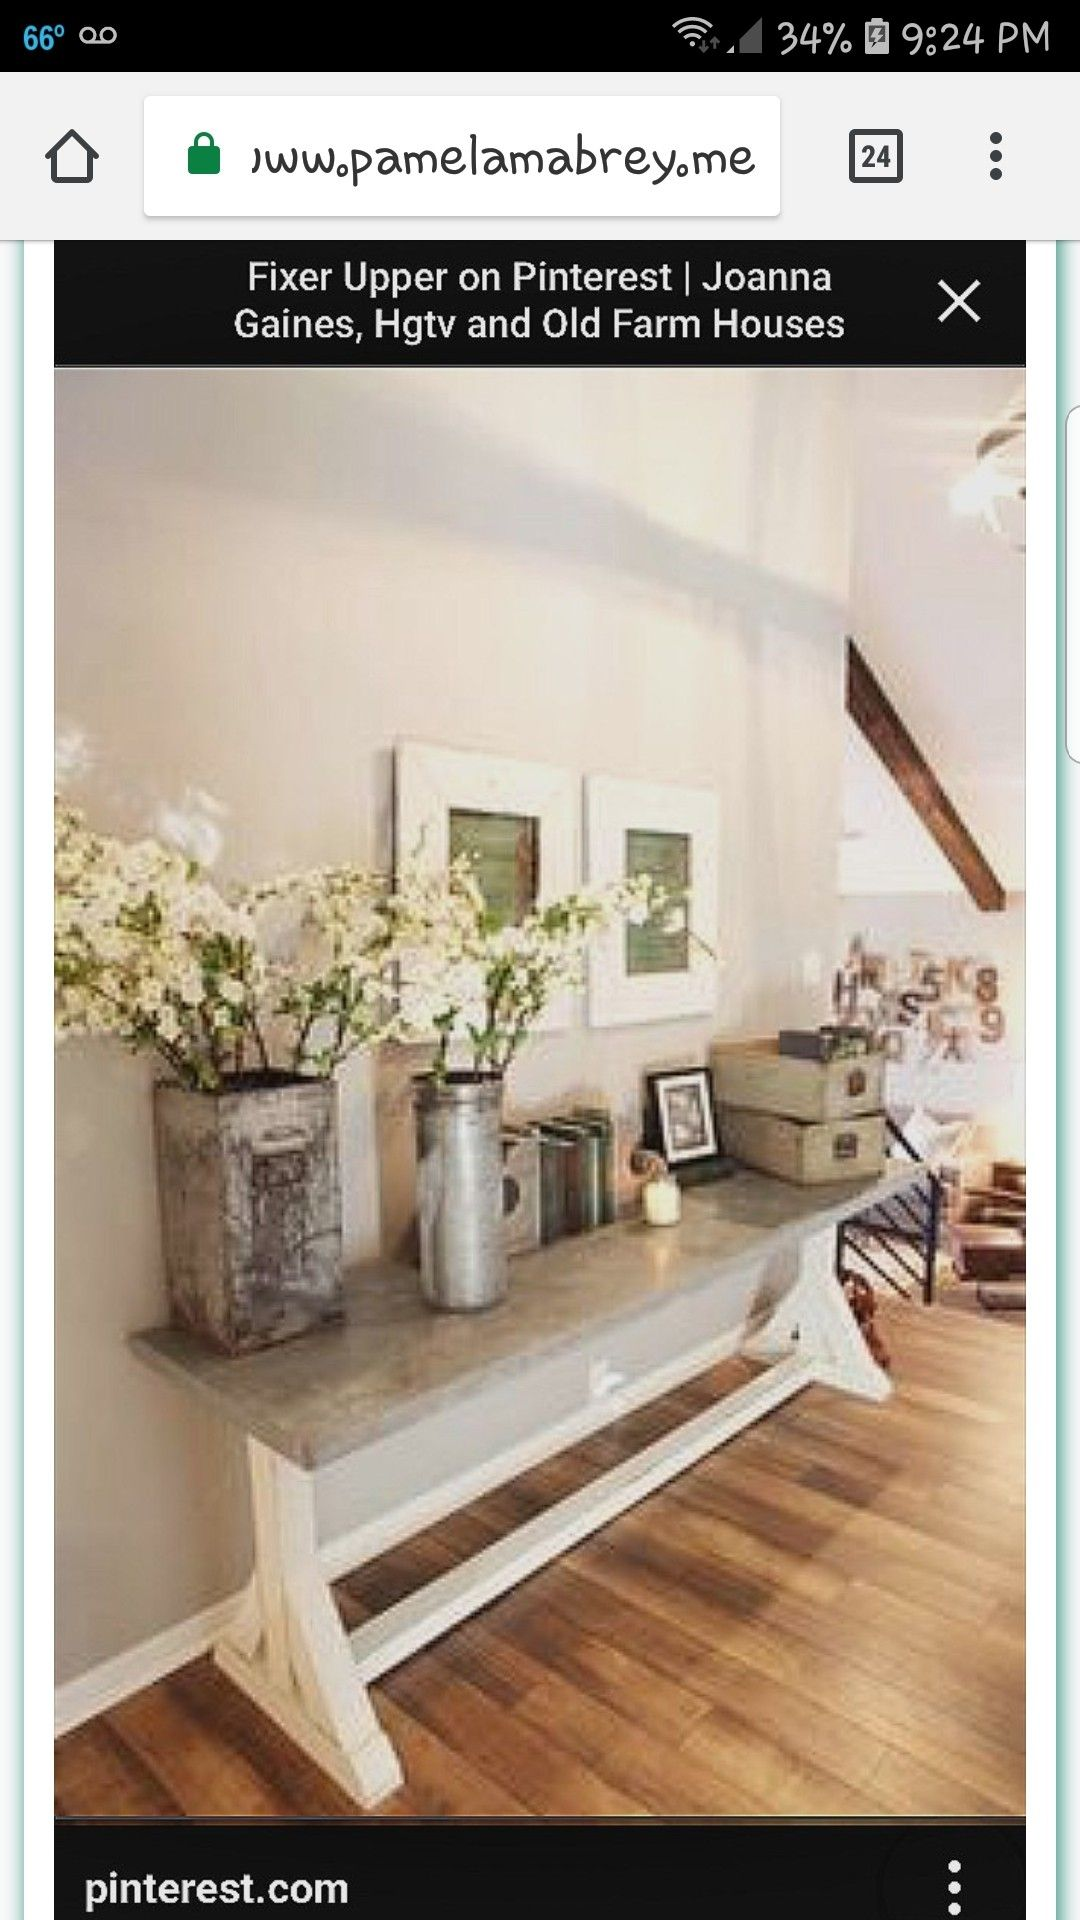 Joanna gaines hallway decor  Pin by T on living room decor  Pinterest  Home Fixer upper and